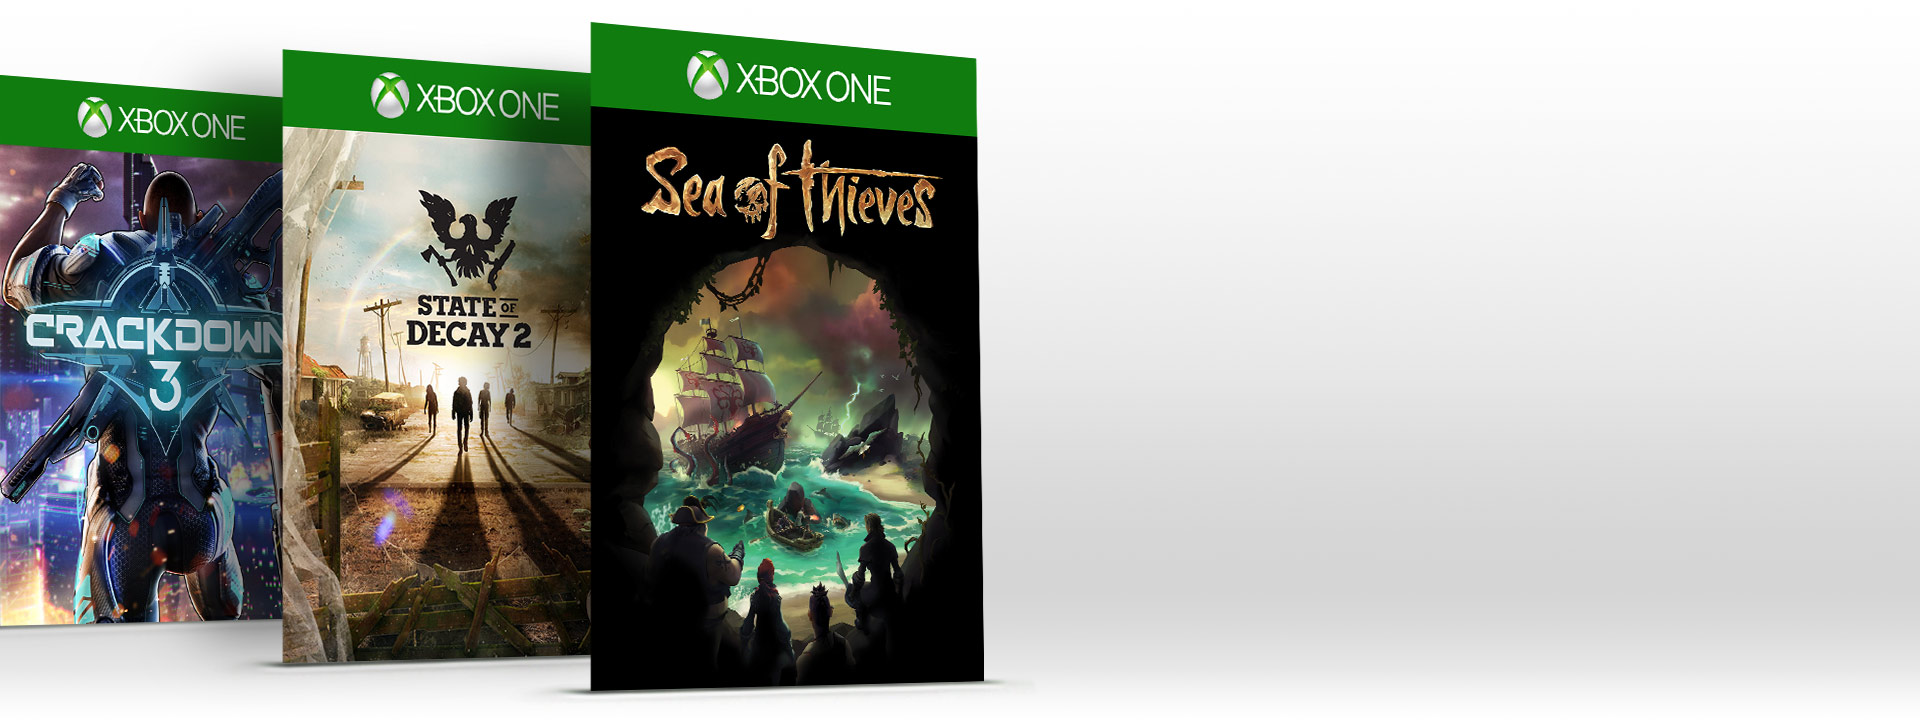 Tres juegos para Xbox consecutivos: Sea of Thieves, State of Decay 2 y Crackdown 3